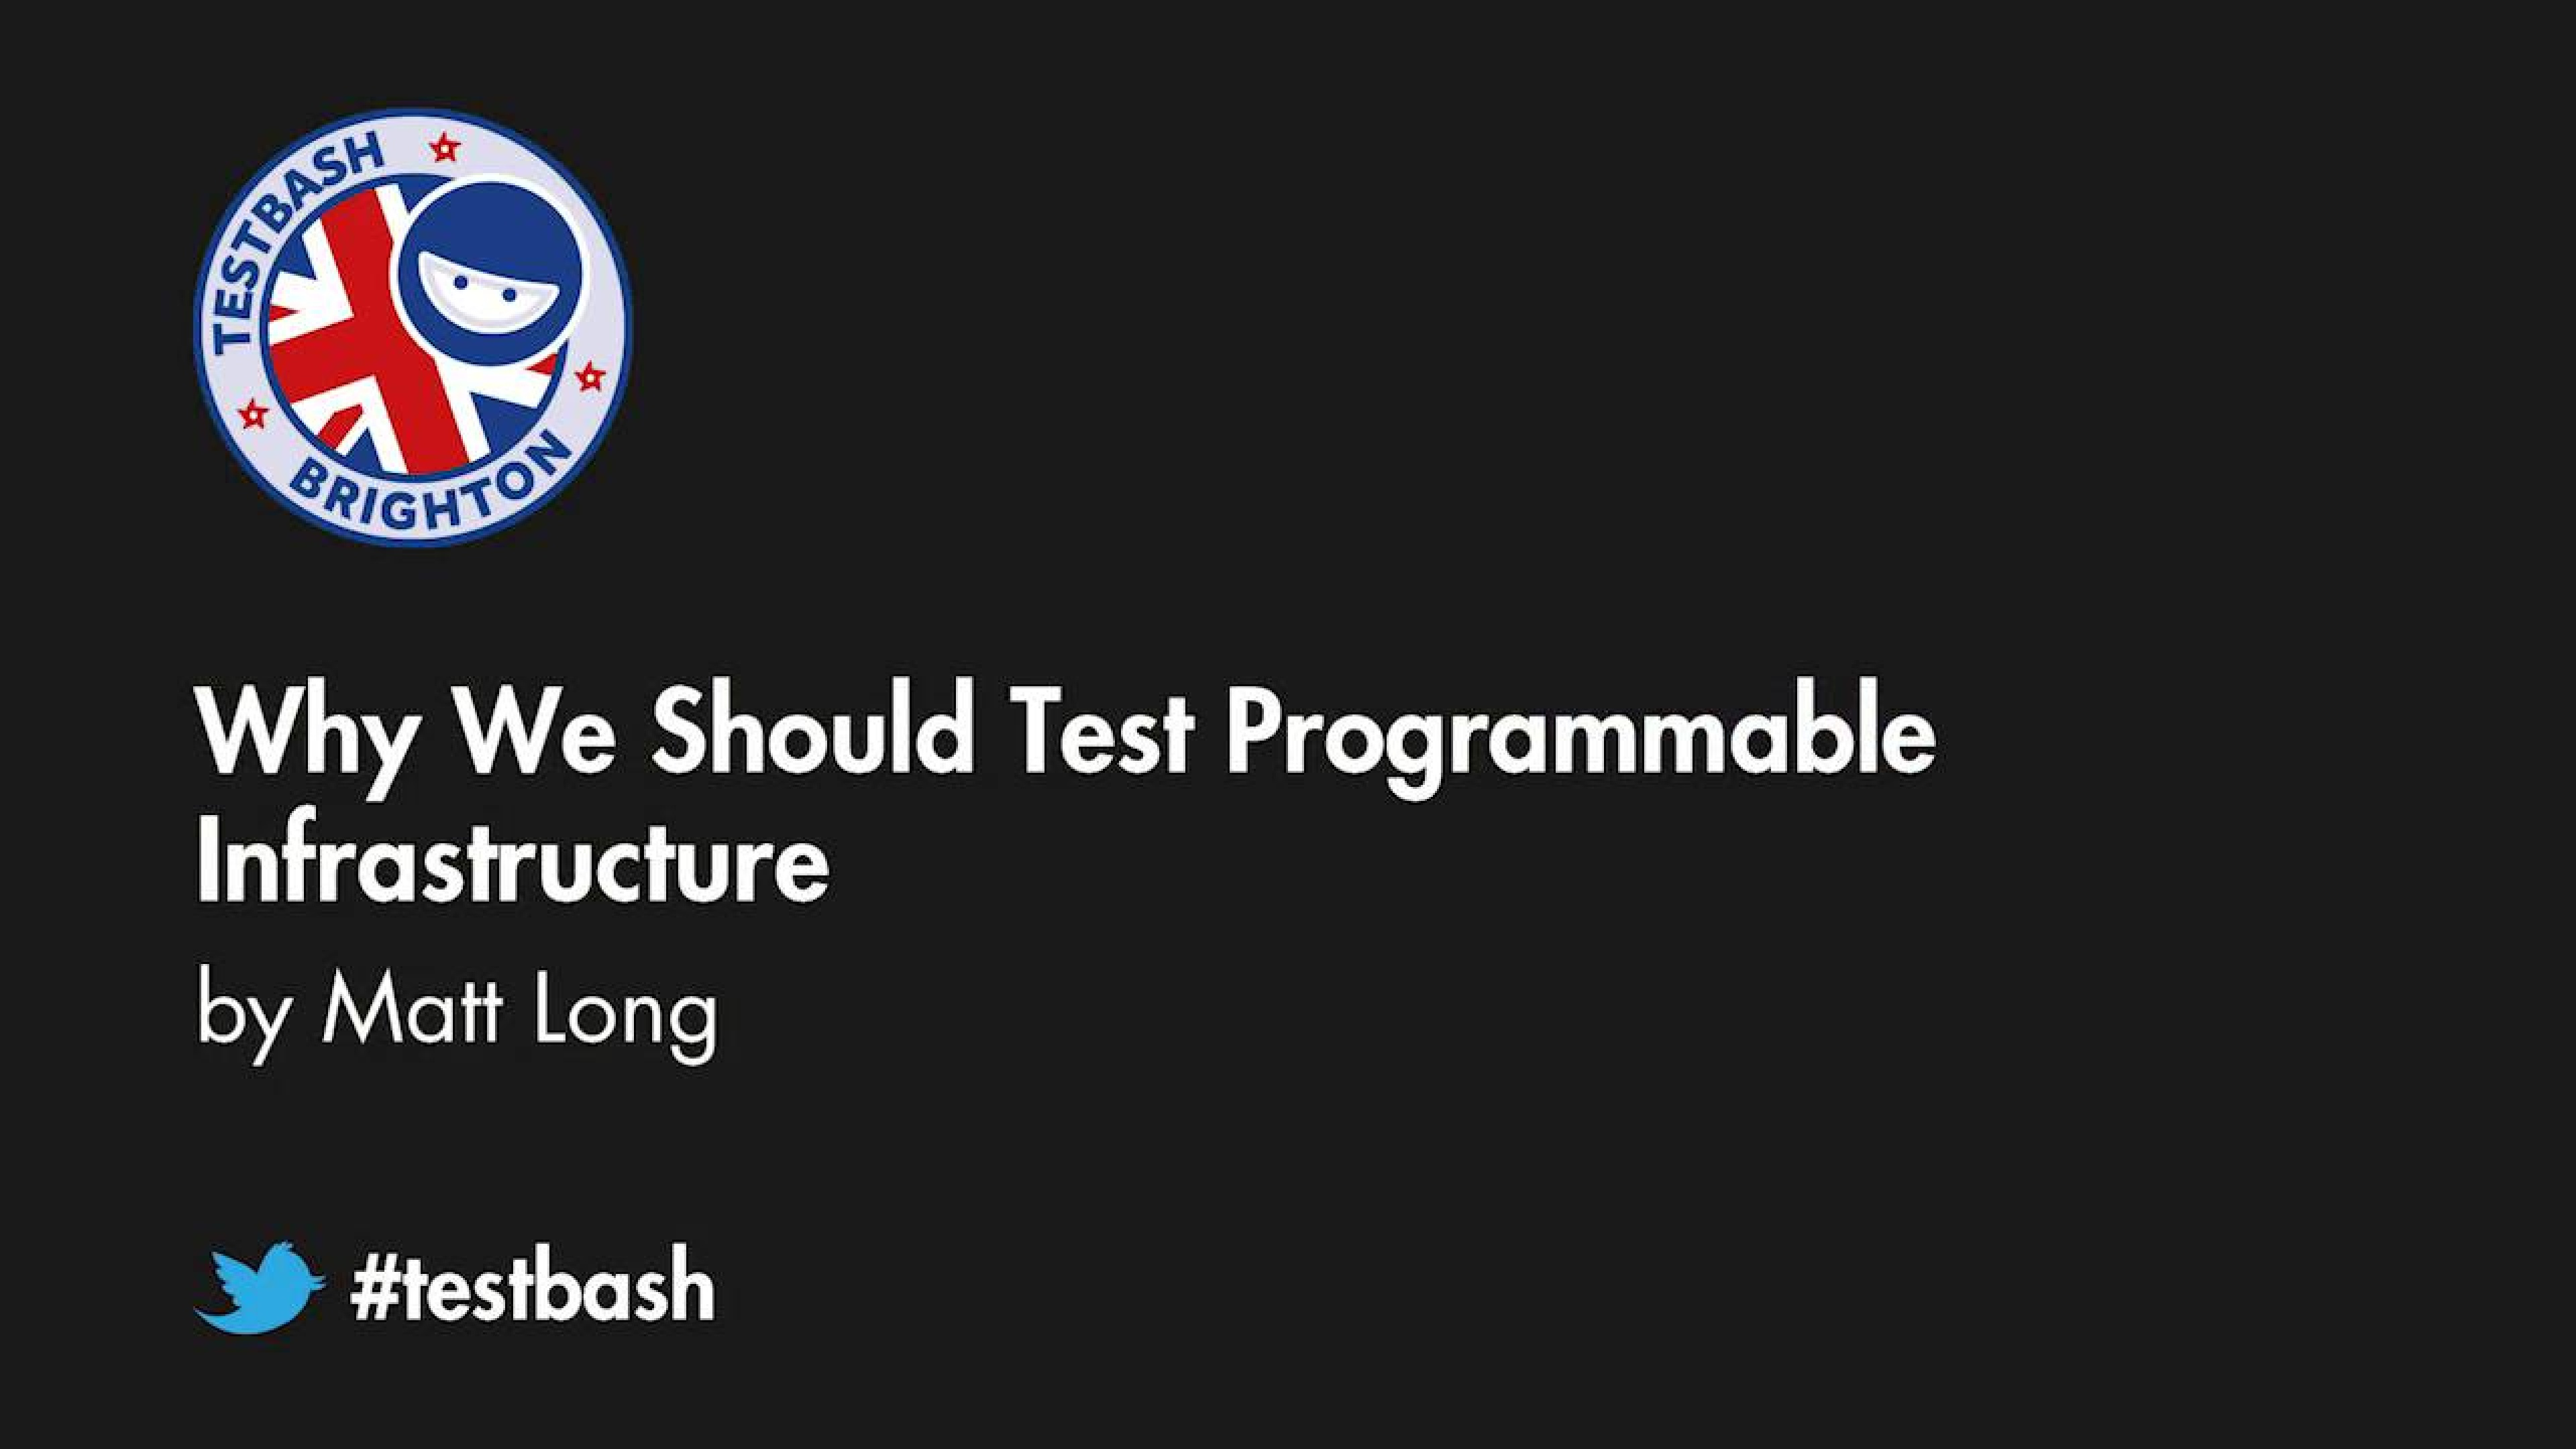 Why We Should Test Programmable Infrastructure - Matt Long